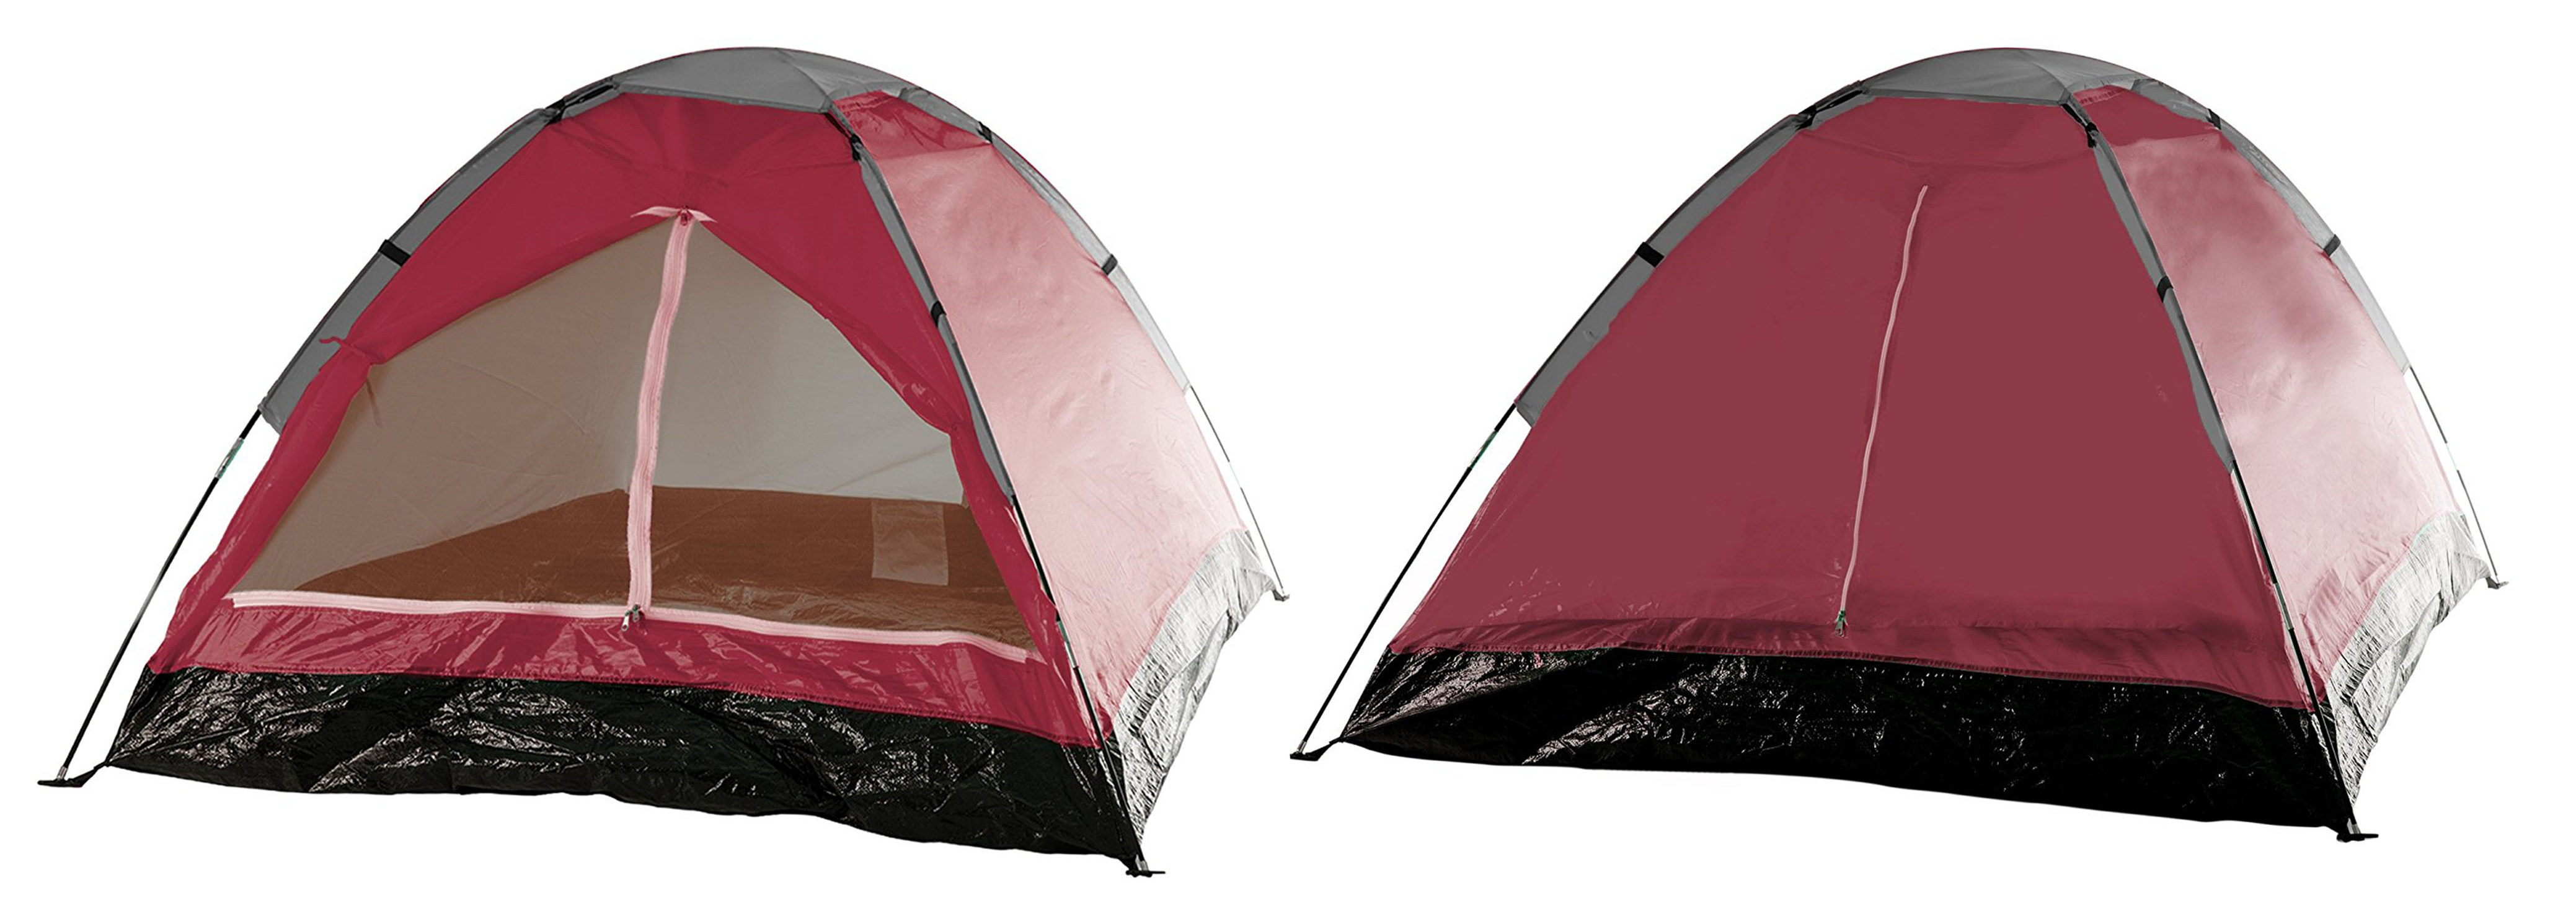 6hy Camper Two Person Tent By Wakeman Outdoors